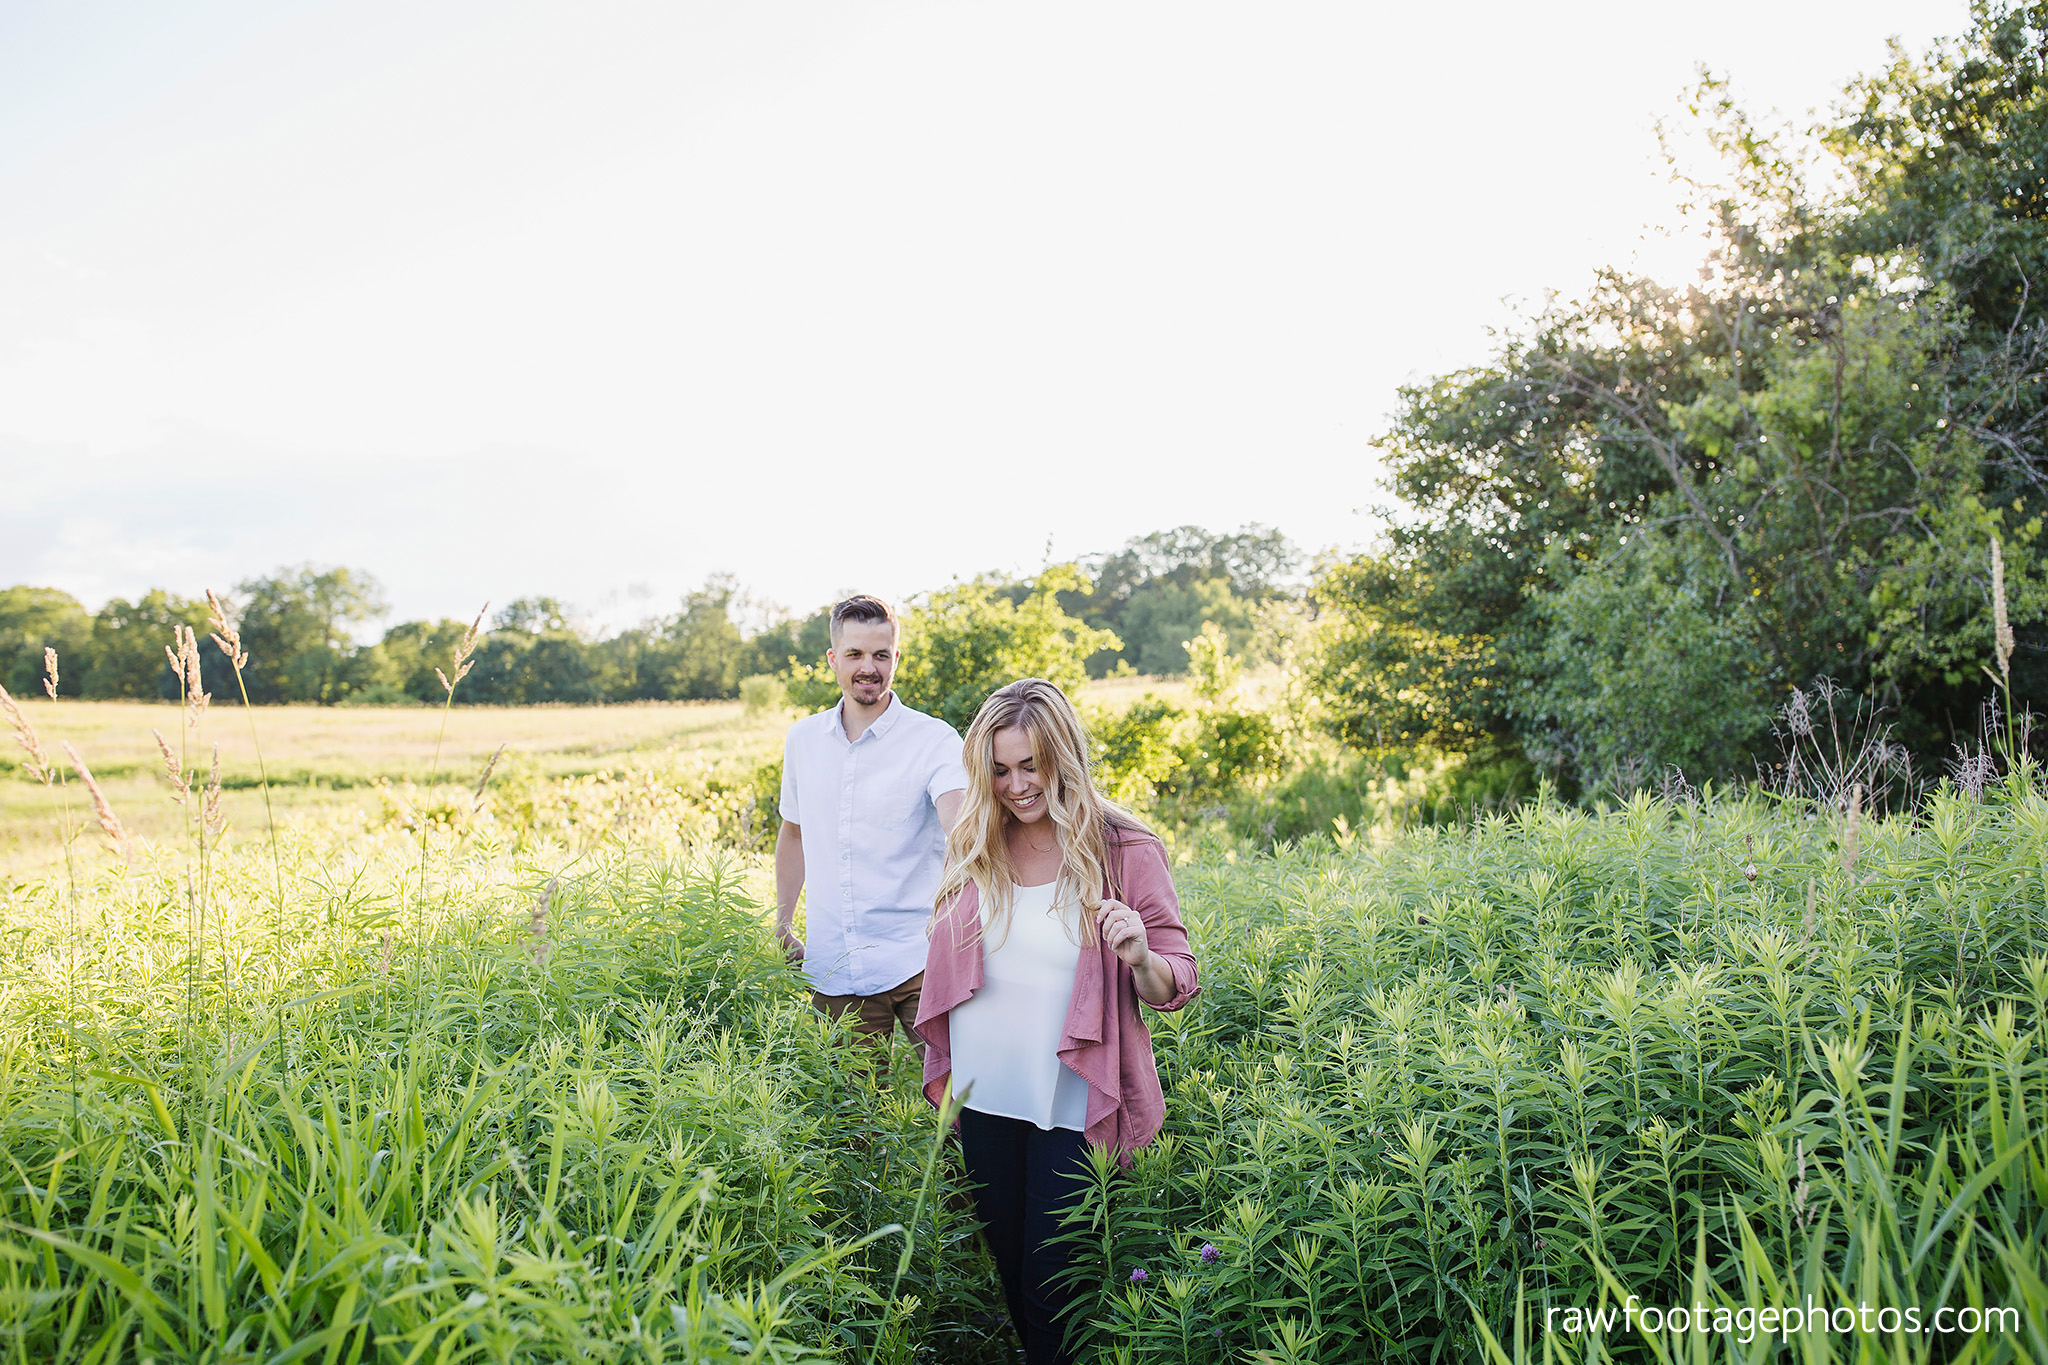 london_ontario_wedding_photographer-raw_footage_photography-mentoring-workshop-golden_hour-engagement_session013.jpg